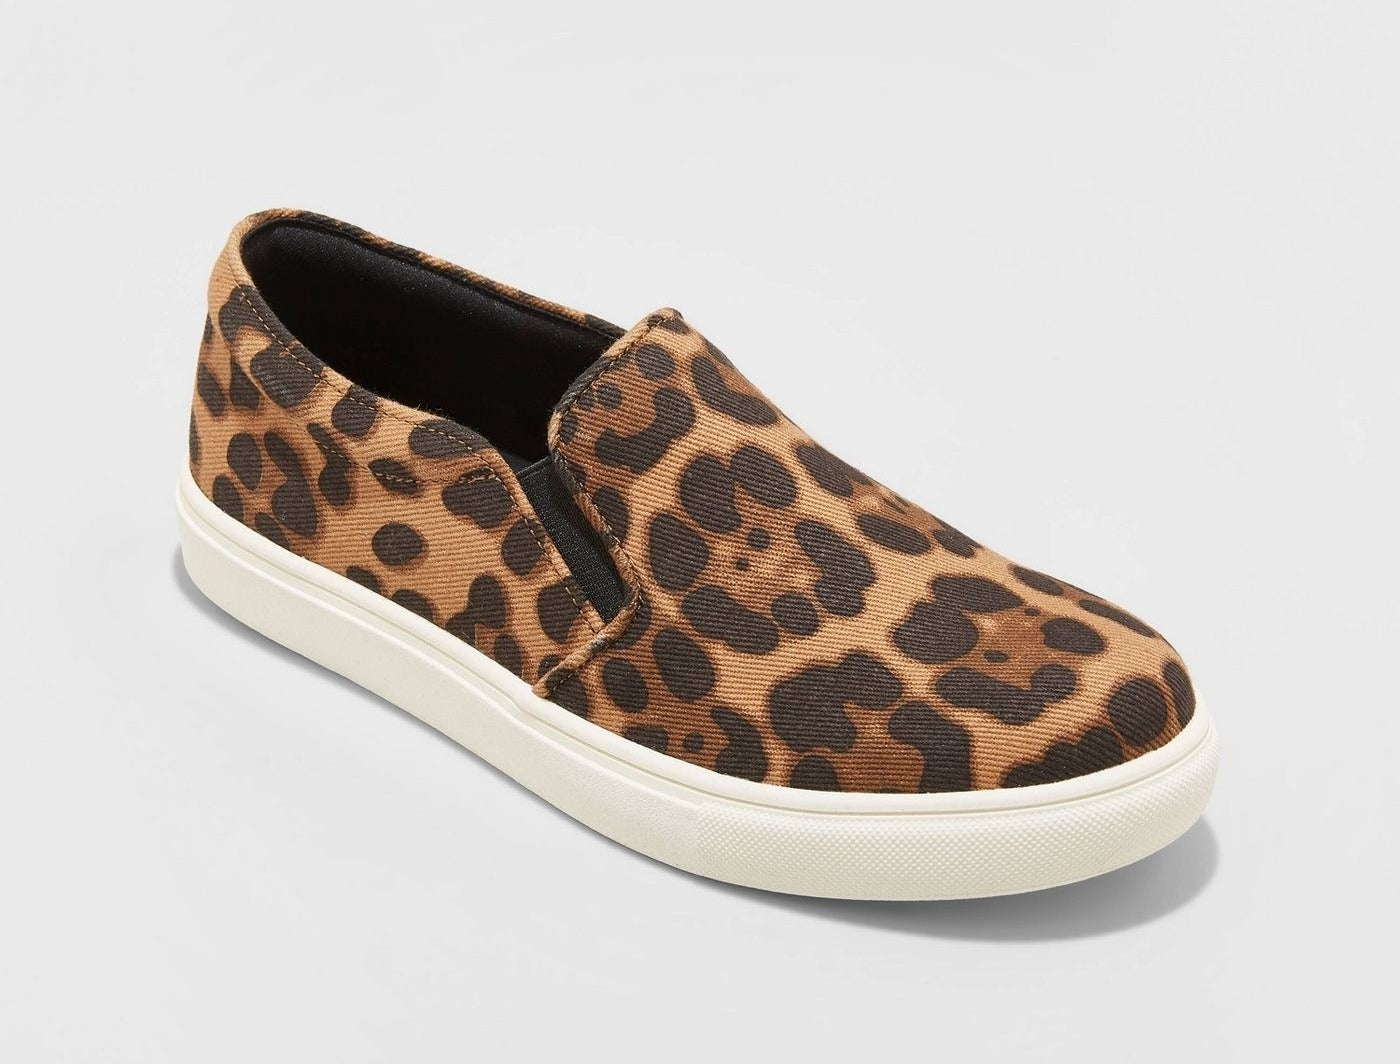 leopard print sneakers with a memory foam insole